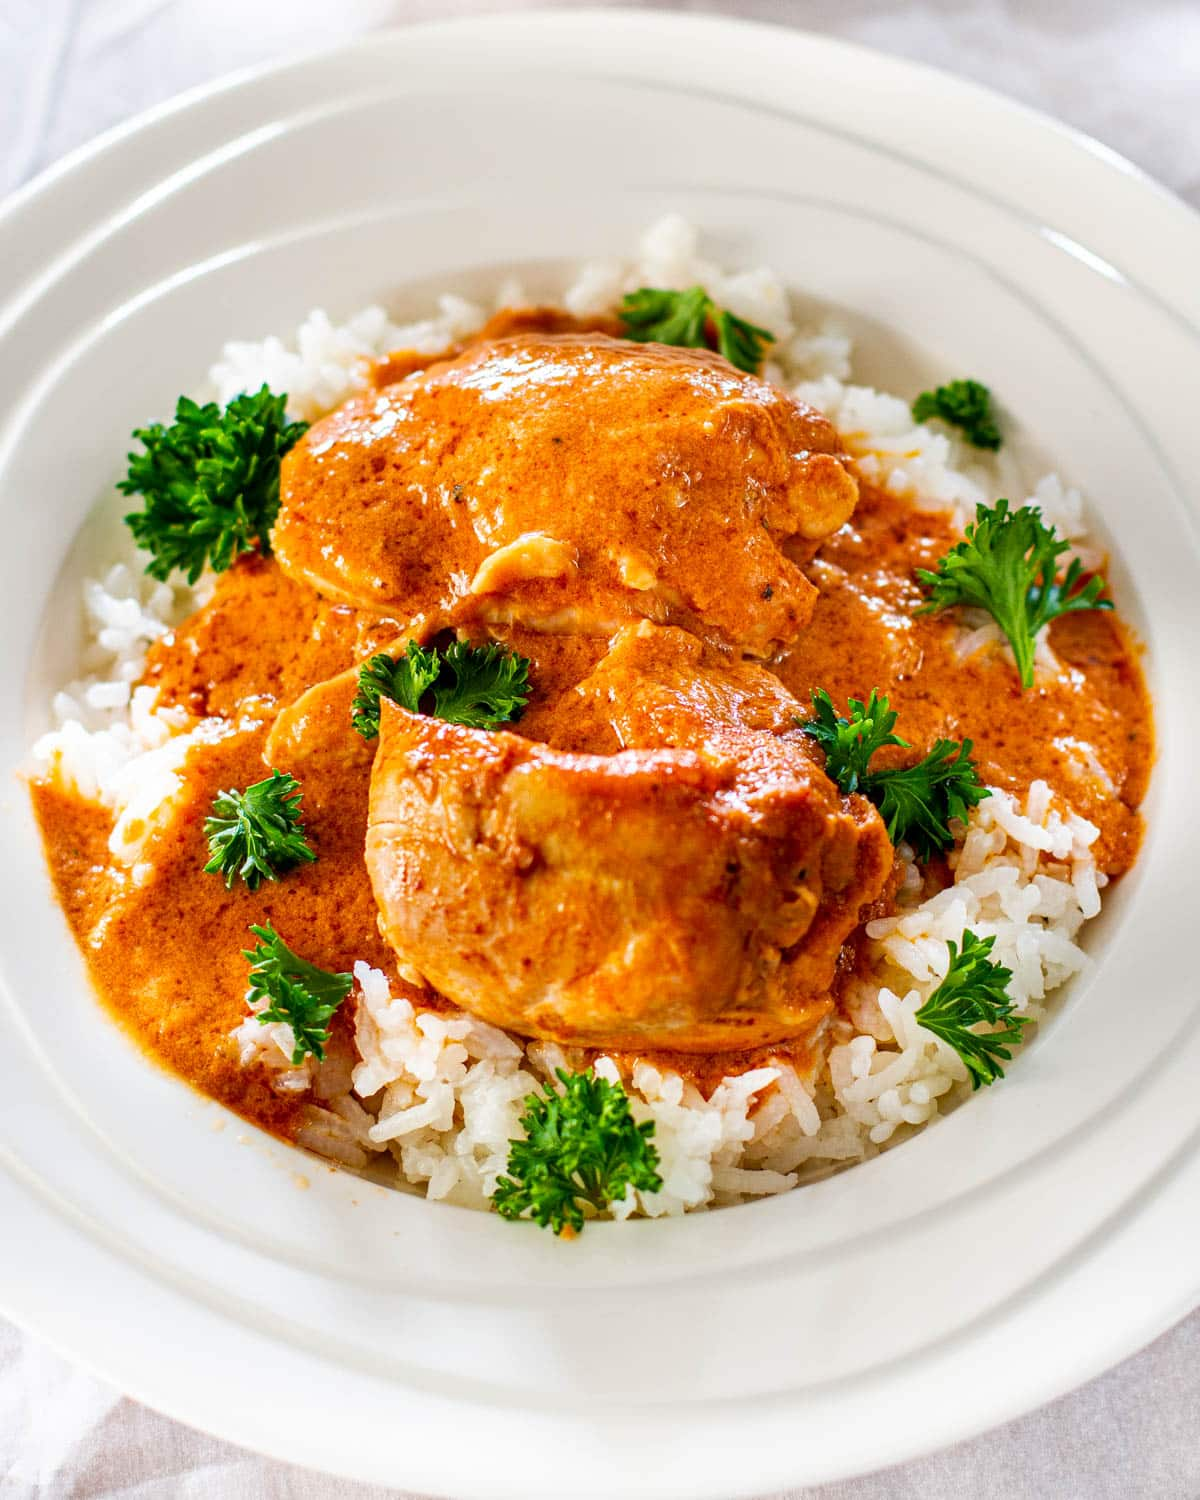 Crockpot Thai Chicken over a bed of rice garnished with parsley